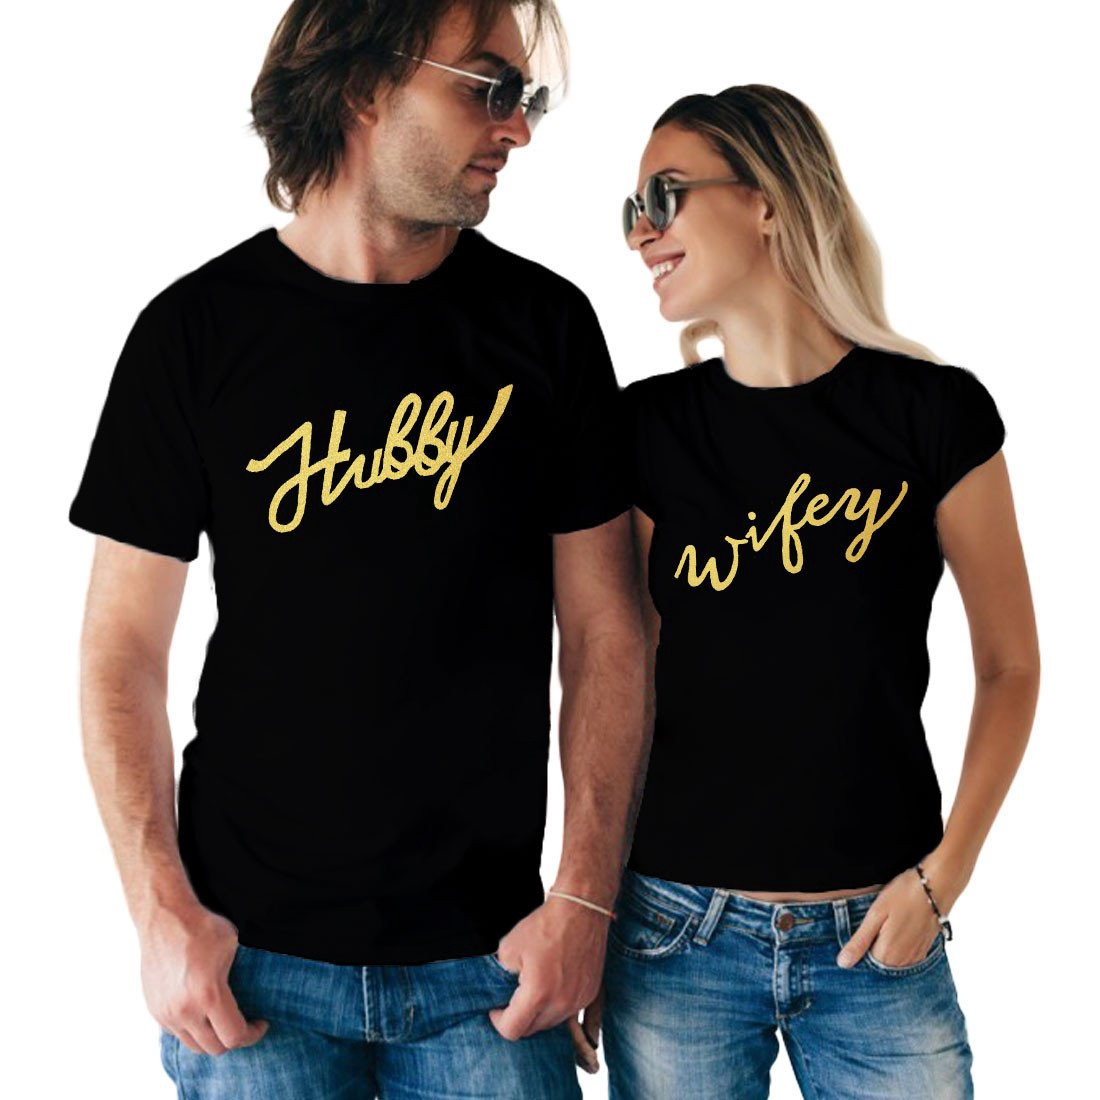 896e8643e Customized Couple Shirts Online